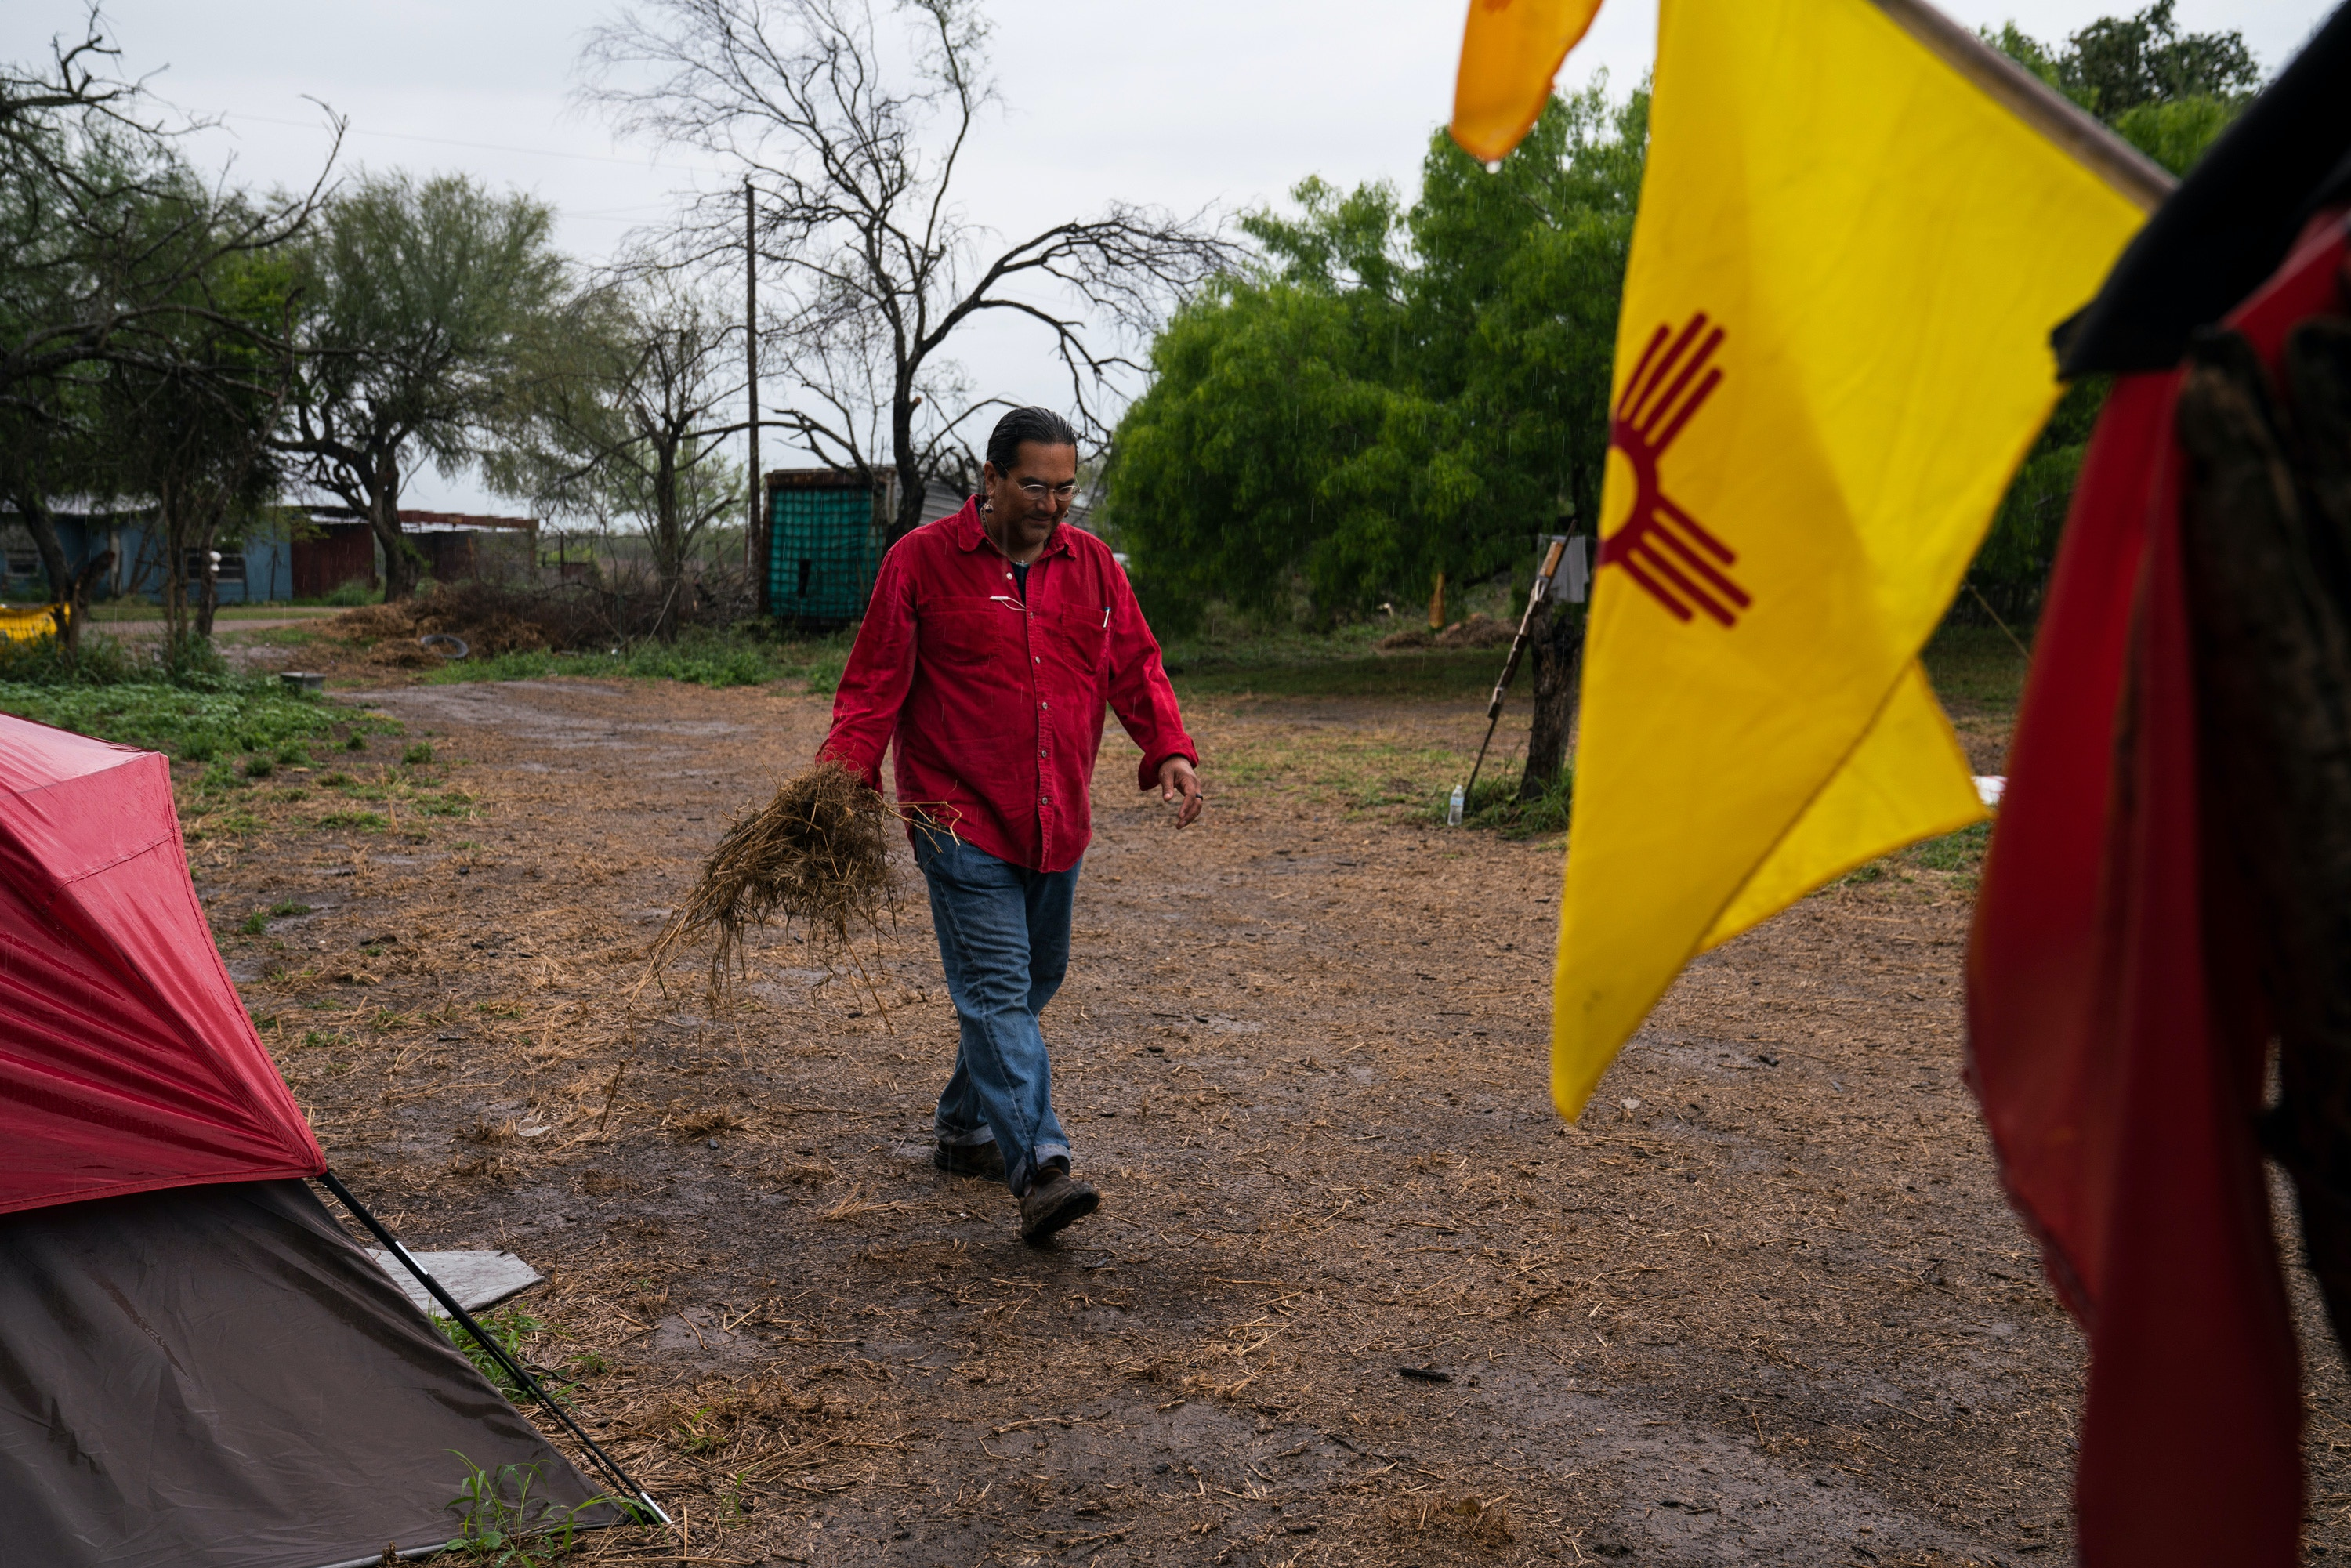 Christopher Basaldú, PhD in anthropology, collects grass to place it outside of his tent to clean up the mud from his shoes at Yalui Village in Hidalgo County, Texas on March 19, 2019. Basaldú has been camping for two months in anticipation of the border wall being built. Photo: Verónica G. Cárdenas for The Intercept